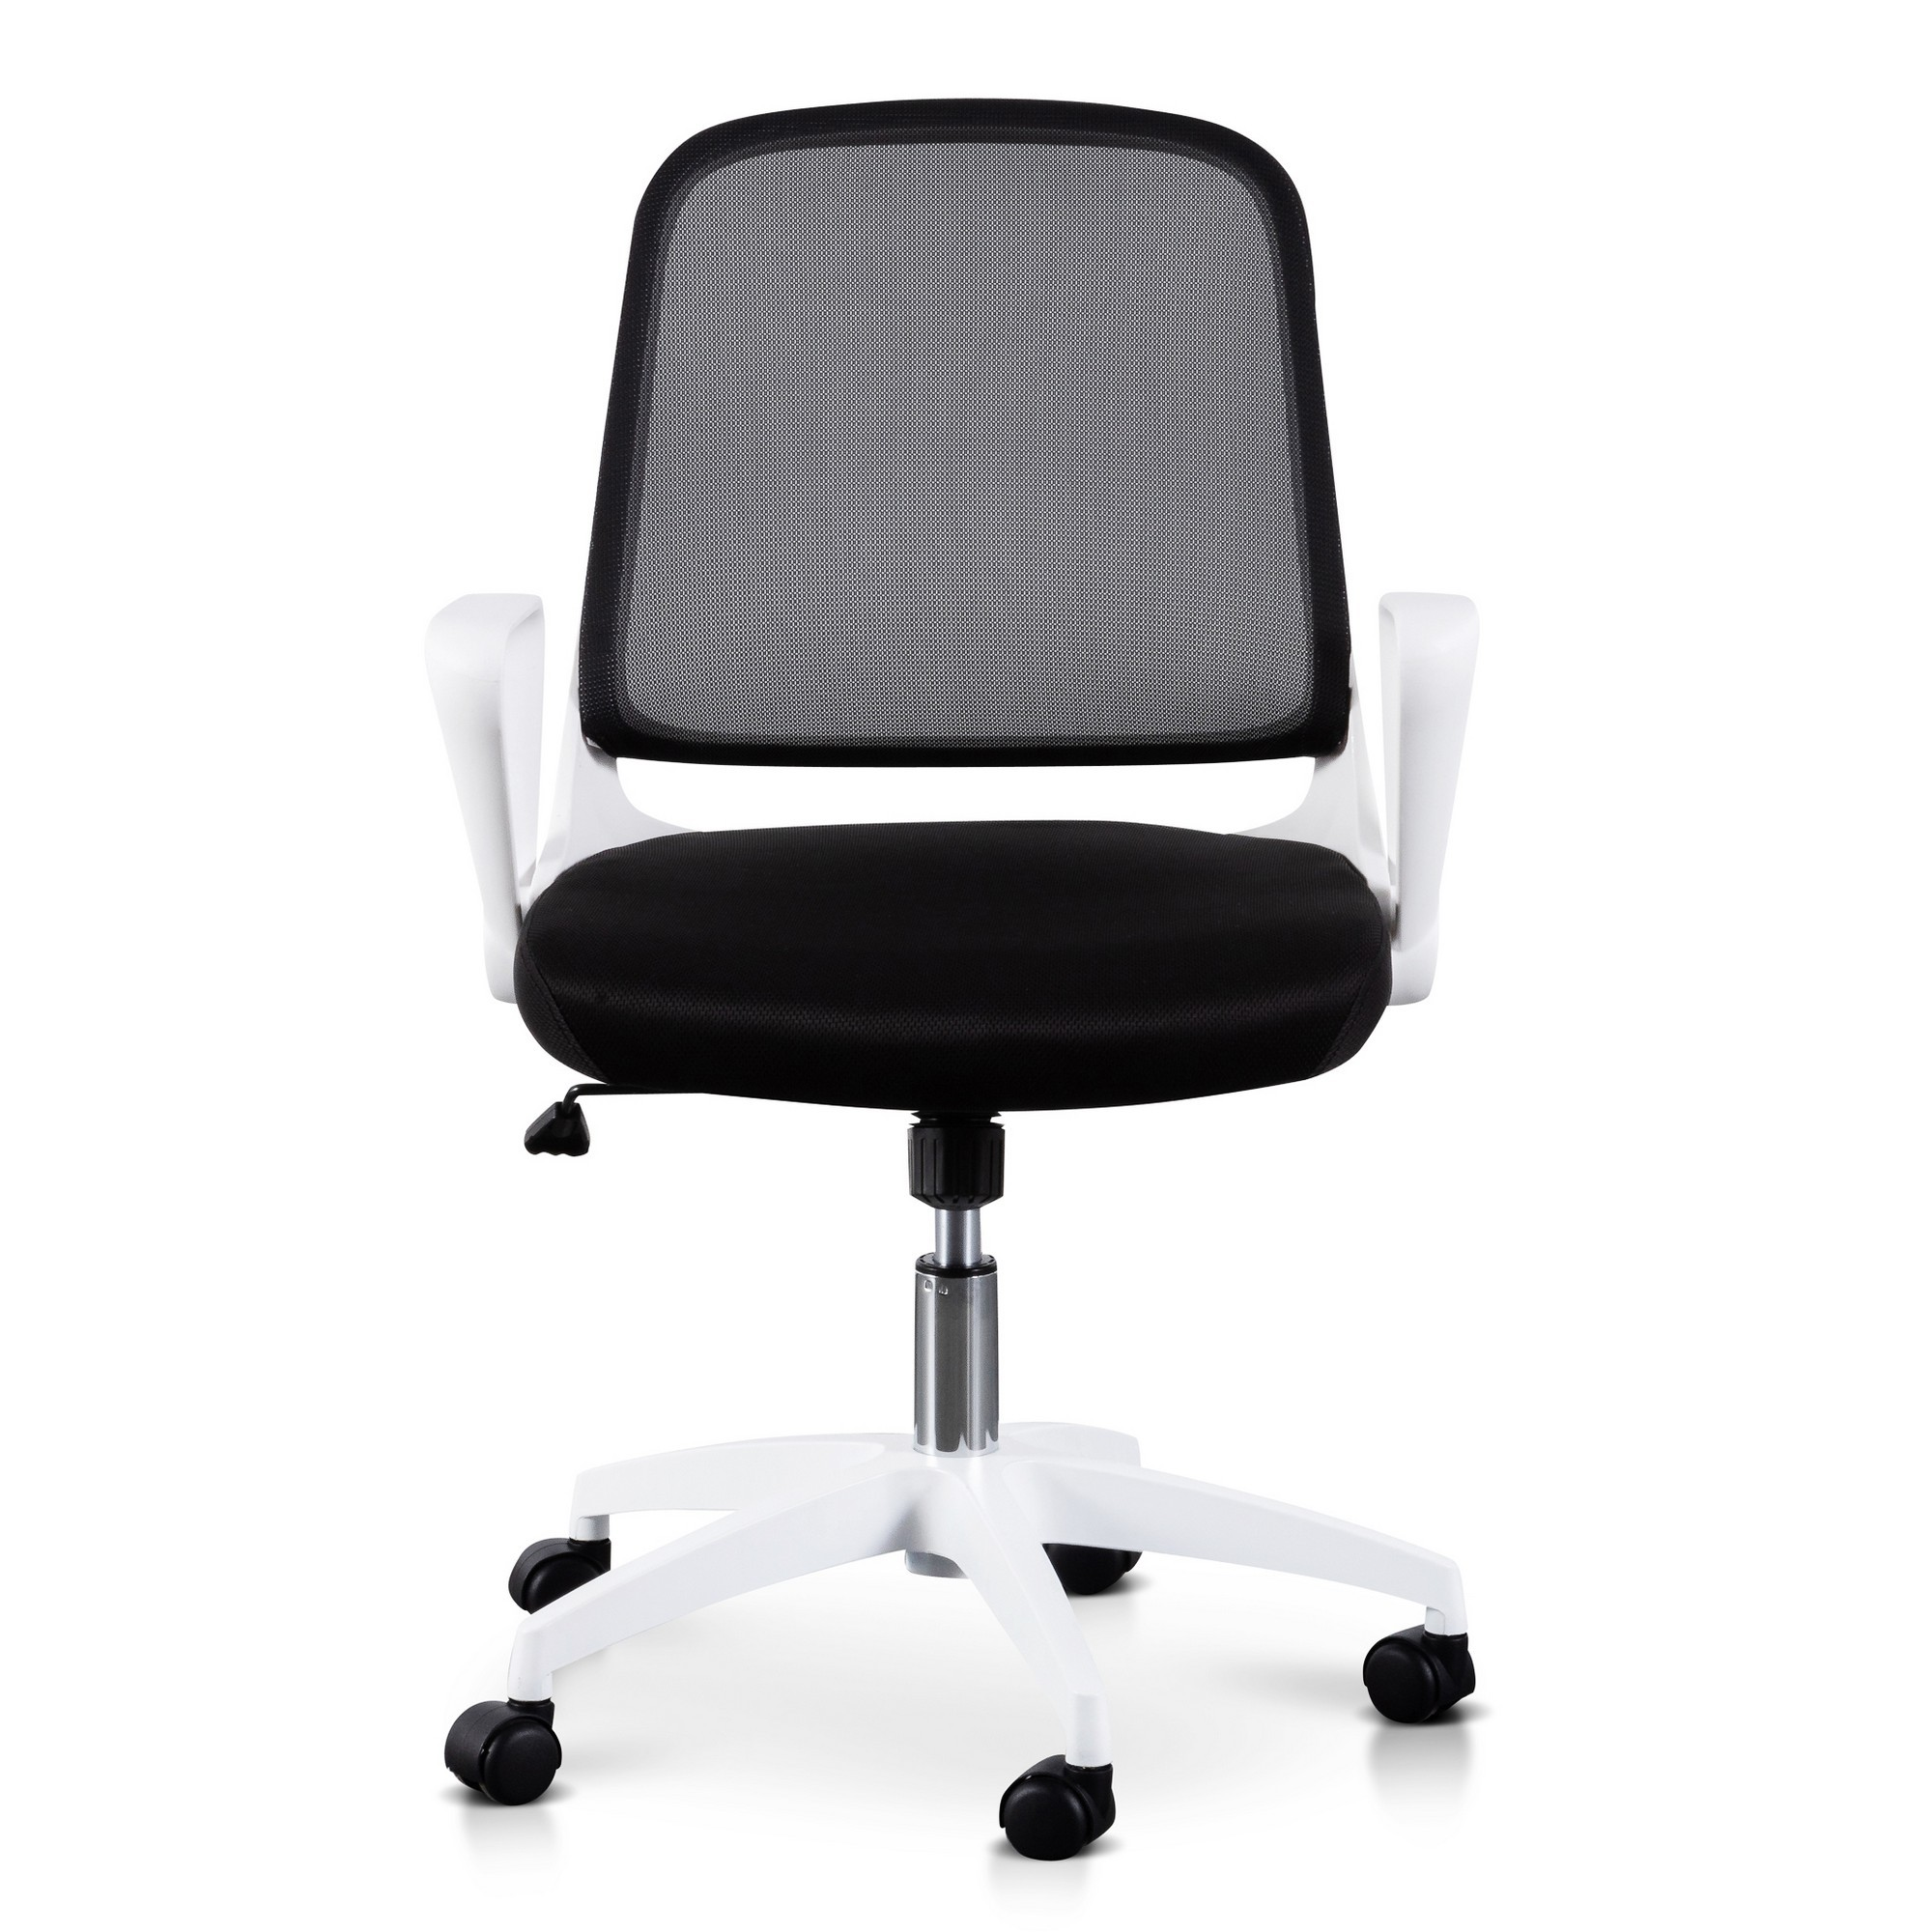 Burston Fabric Office Chair, White / Black